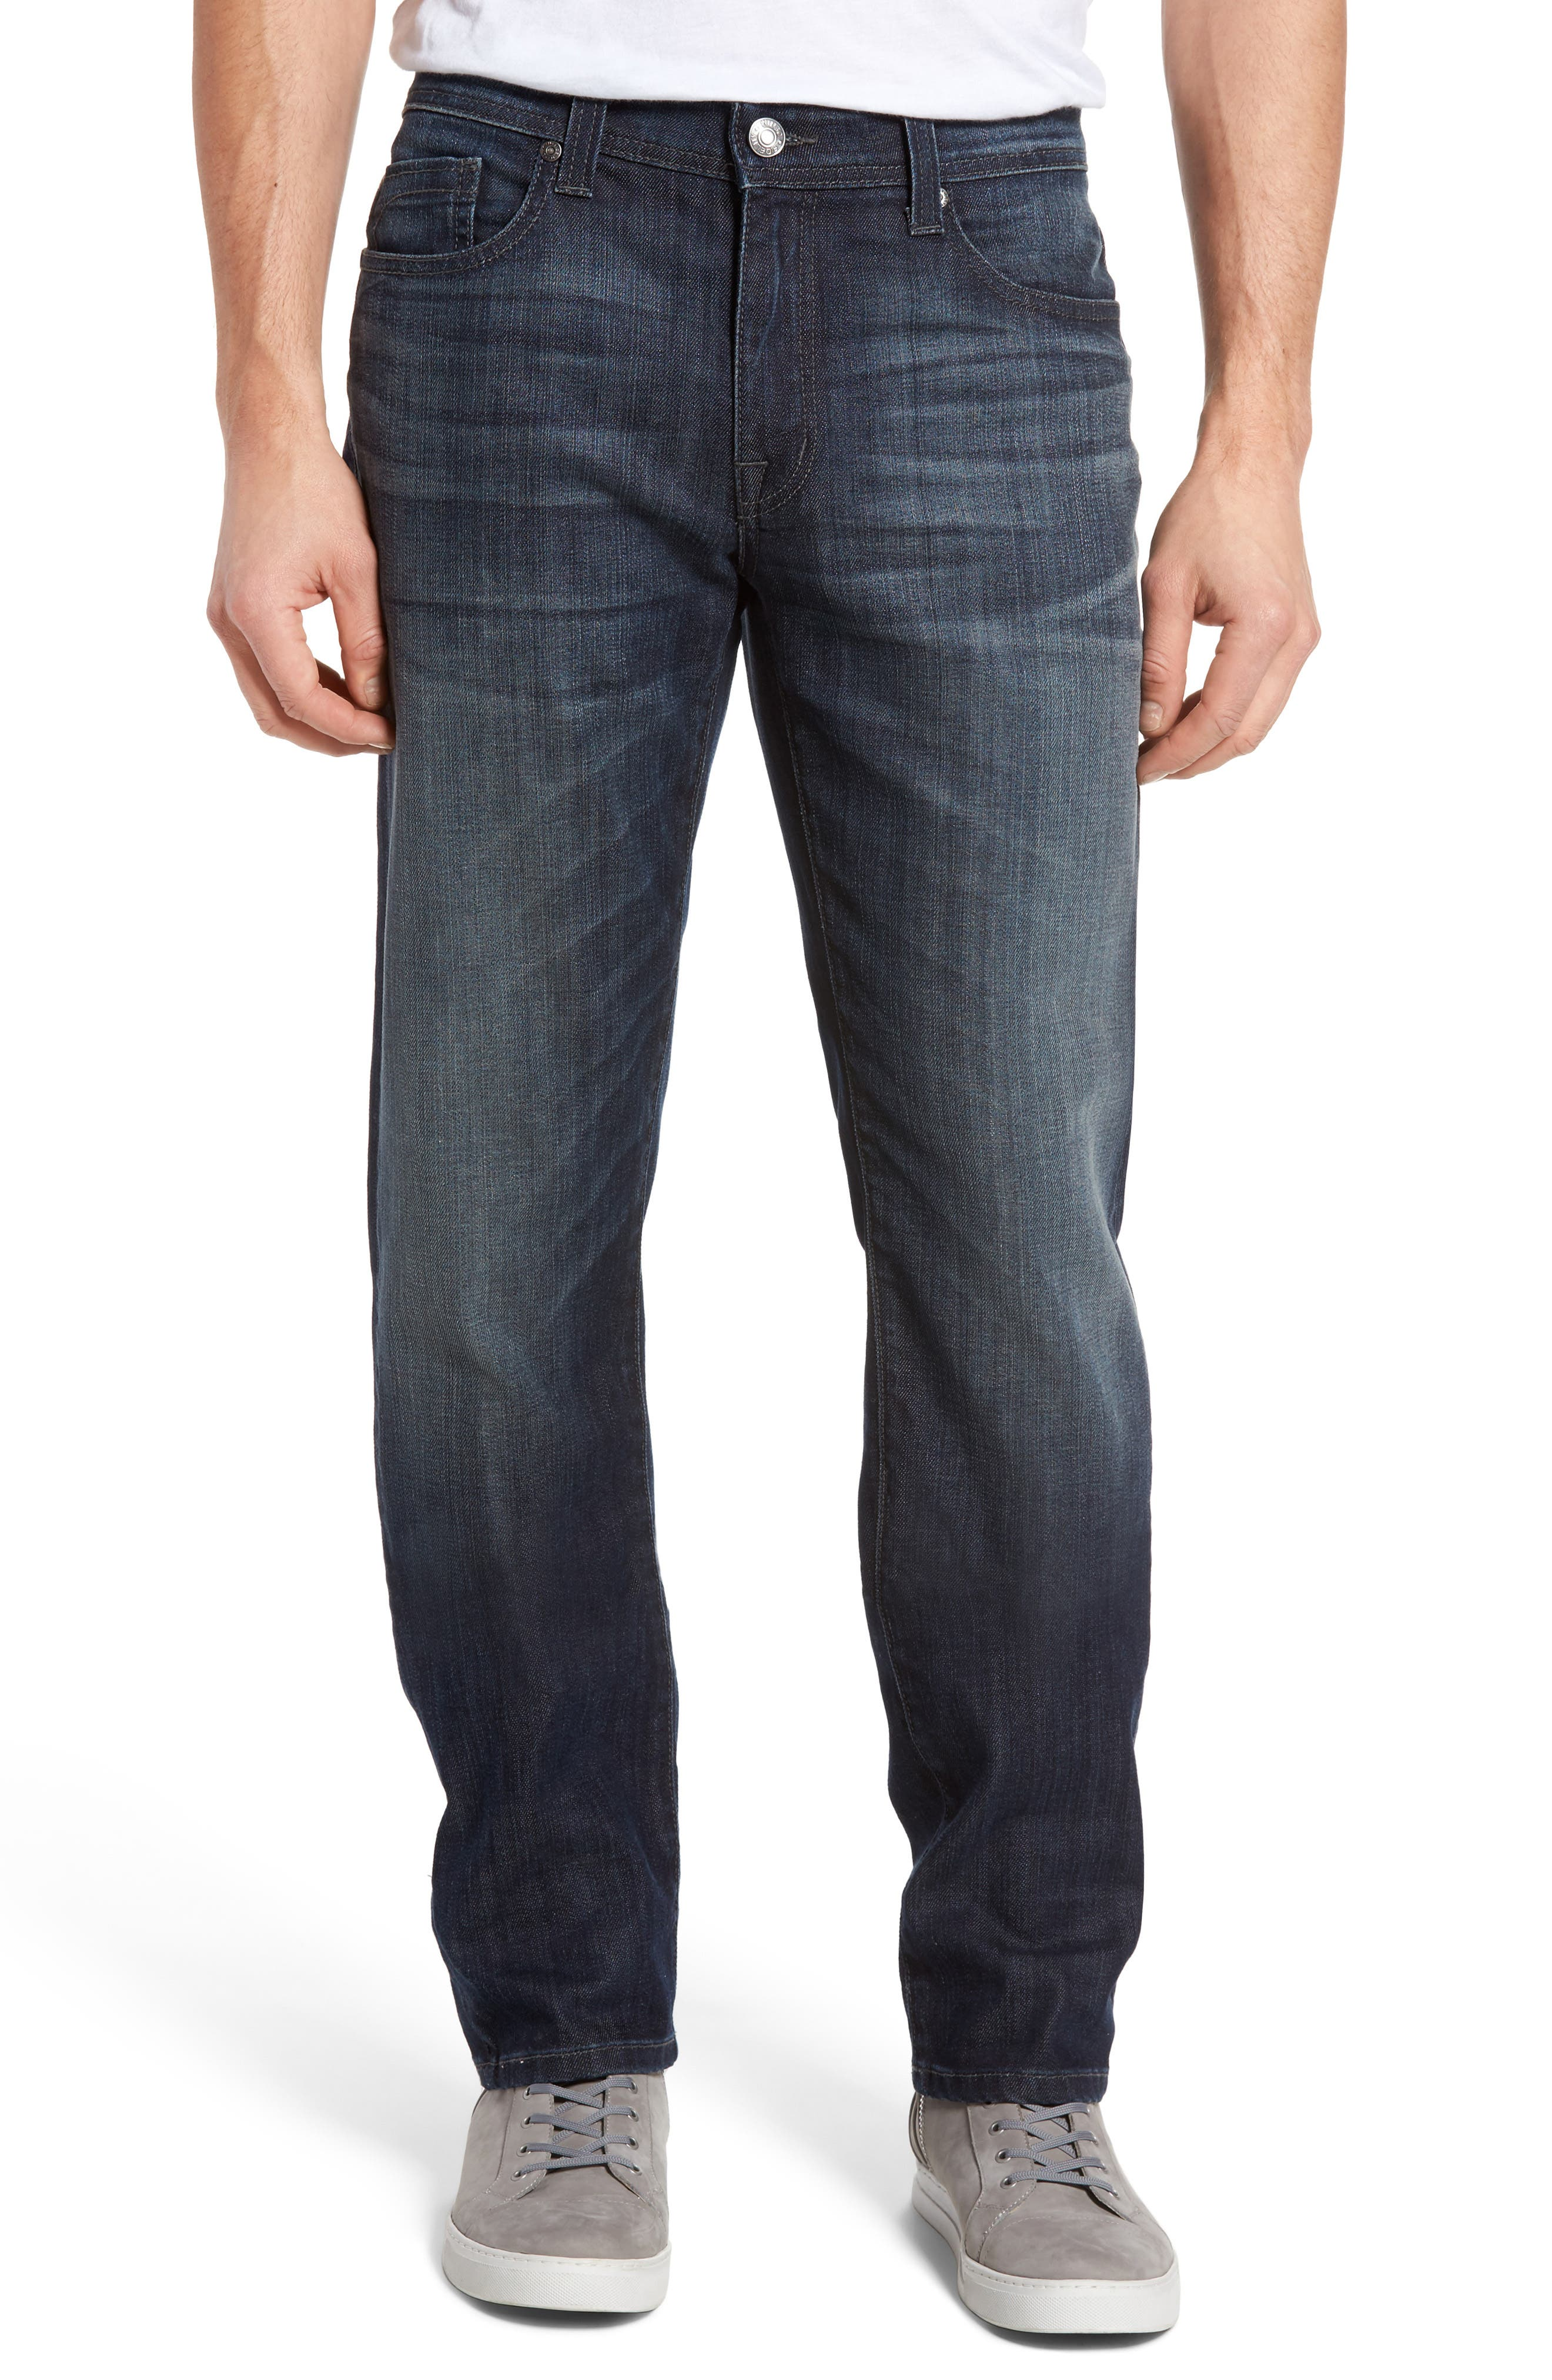 Jimmy Slim Straight Leg Jeans,                         Main,                         color, Scorpion